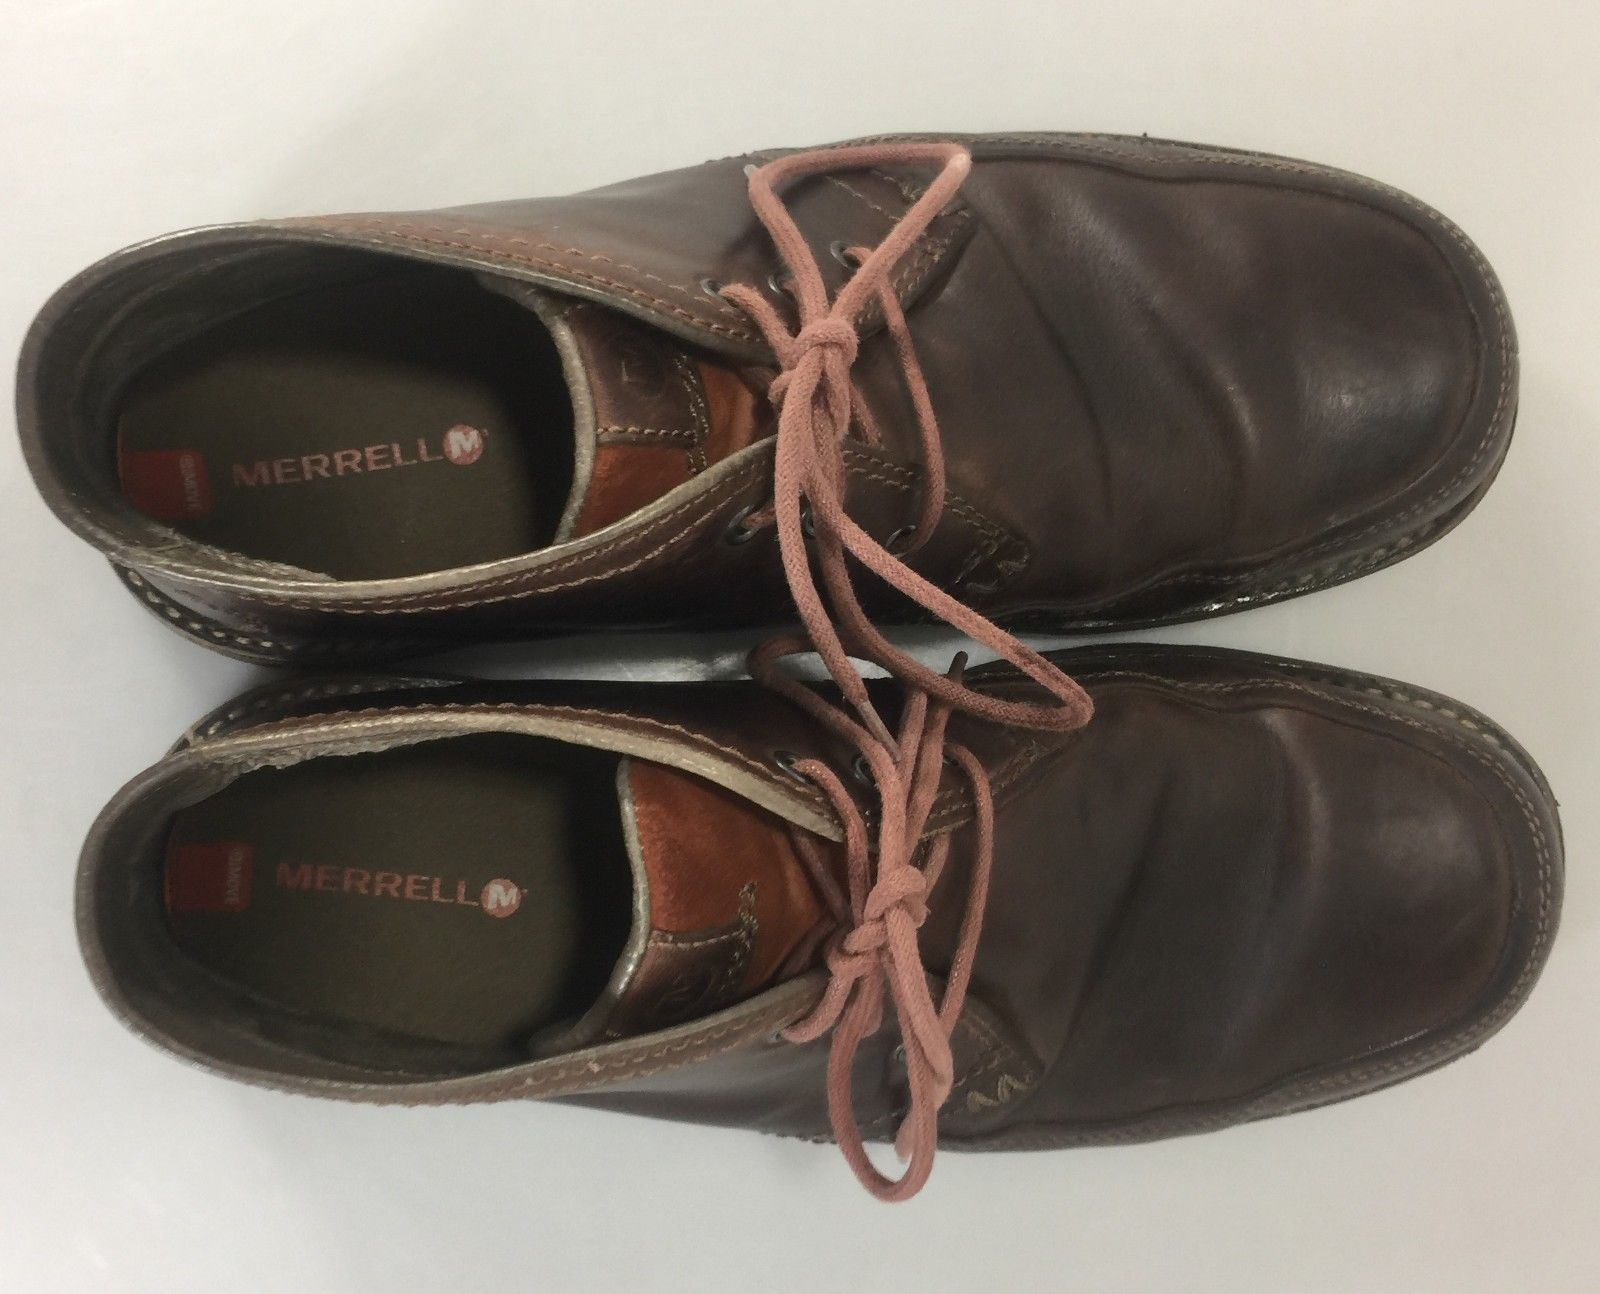 Merrell Men Chukka Boots Shoes Size 11 Cinnamon Brown Leather Lace Up Casual